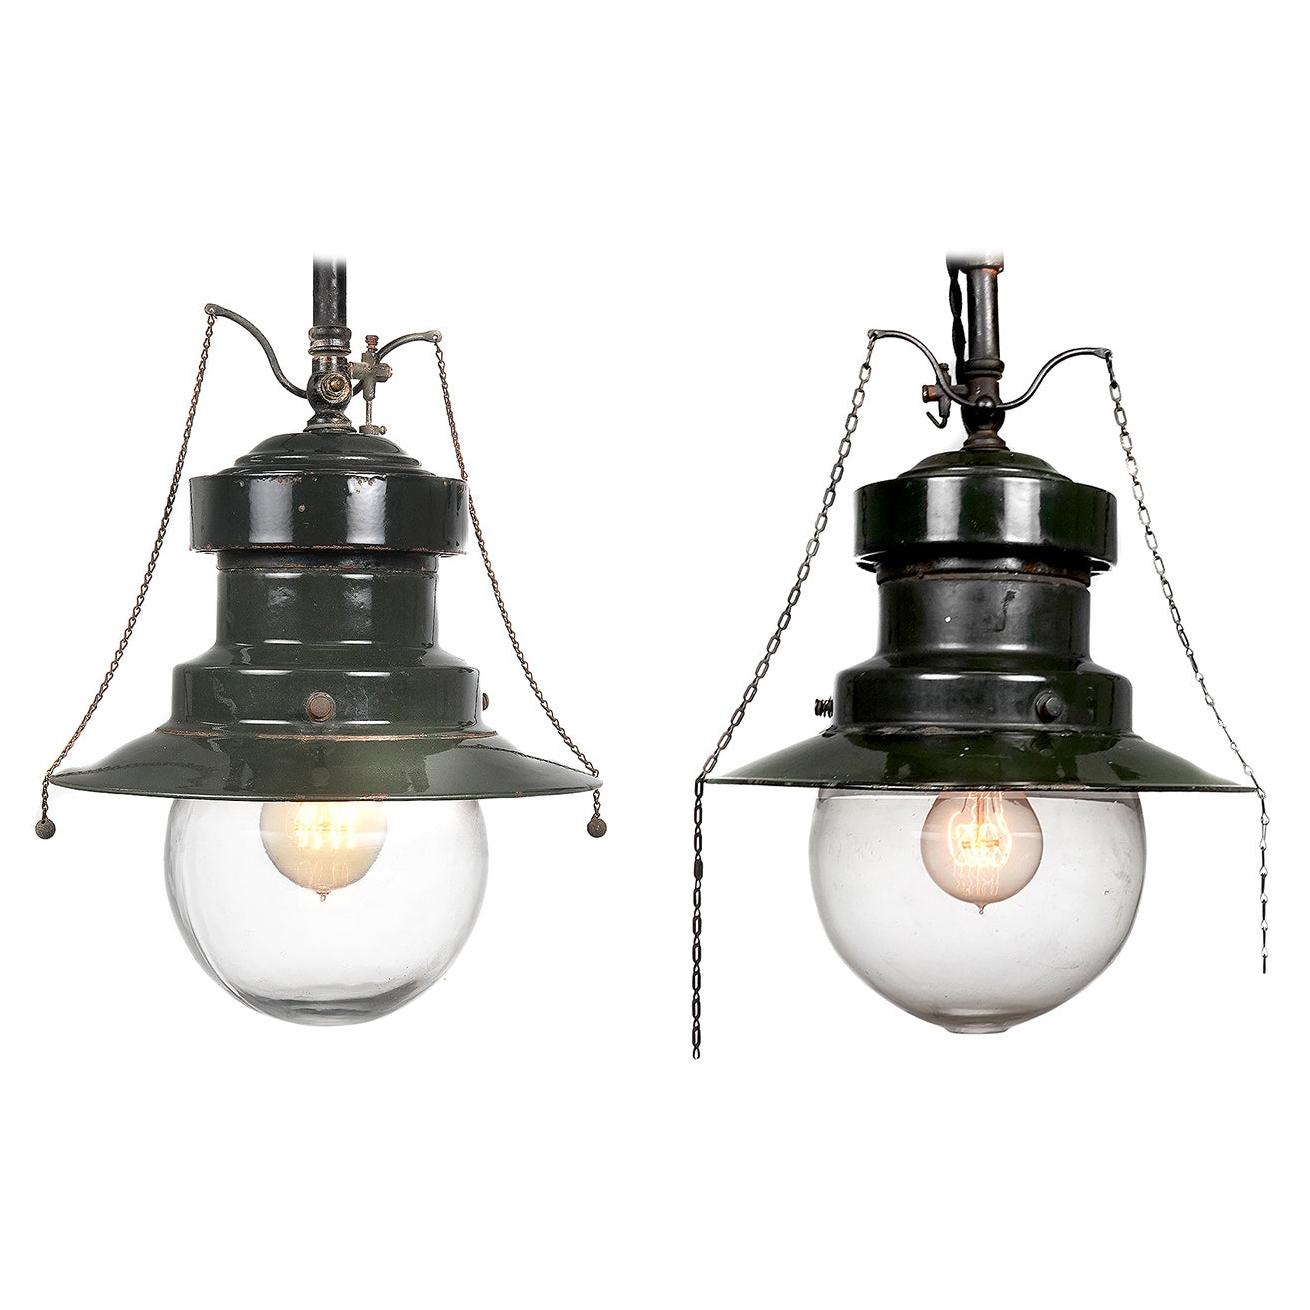 Pair of Mini Electrified Green Porcelain Gas Lamps